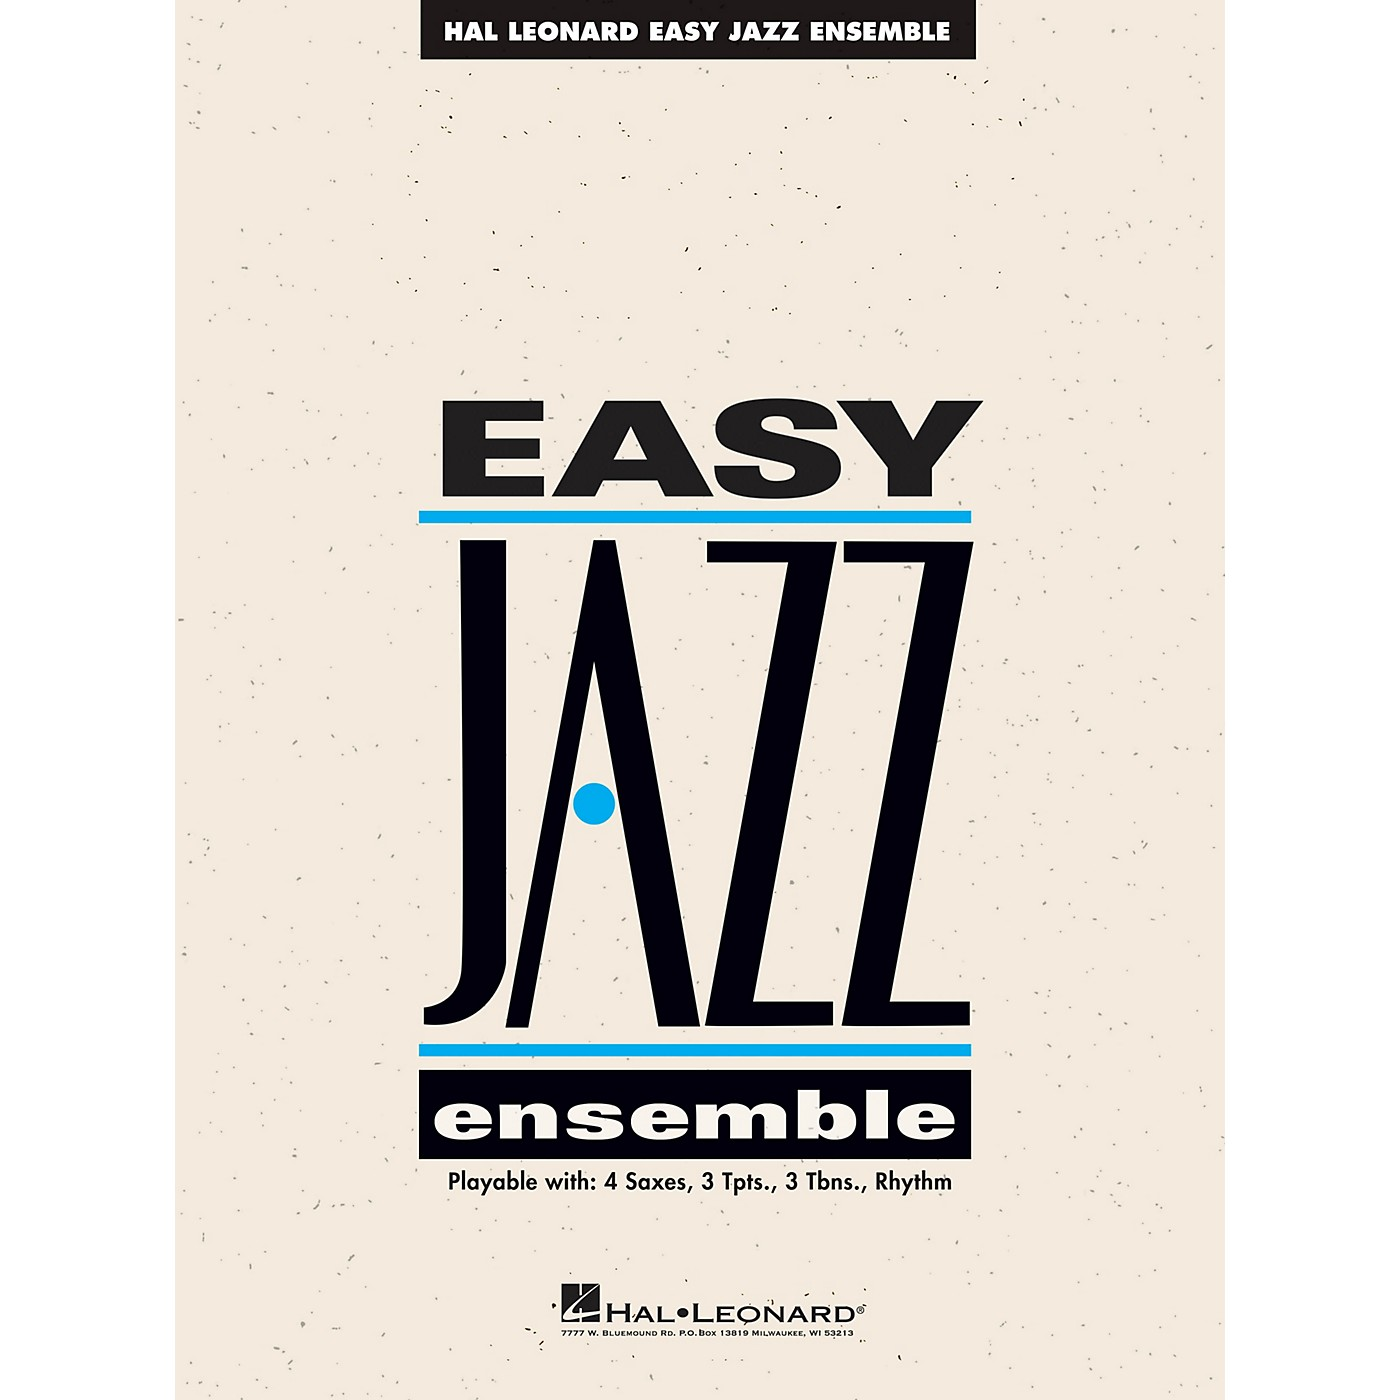 Hal Leonard The Best of Easy Jazz - Trombone 4 (15 Selections from the Easy Jazz Ensemble Series) Jazz Band Level 2 thumbnail